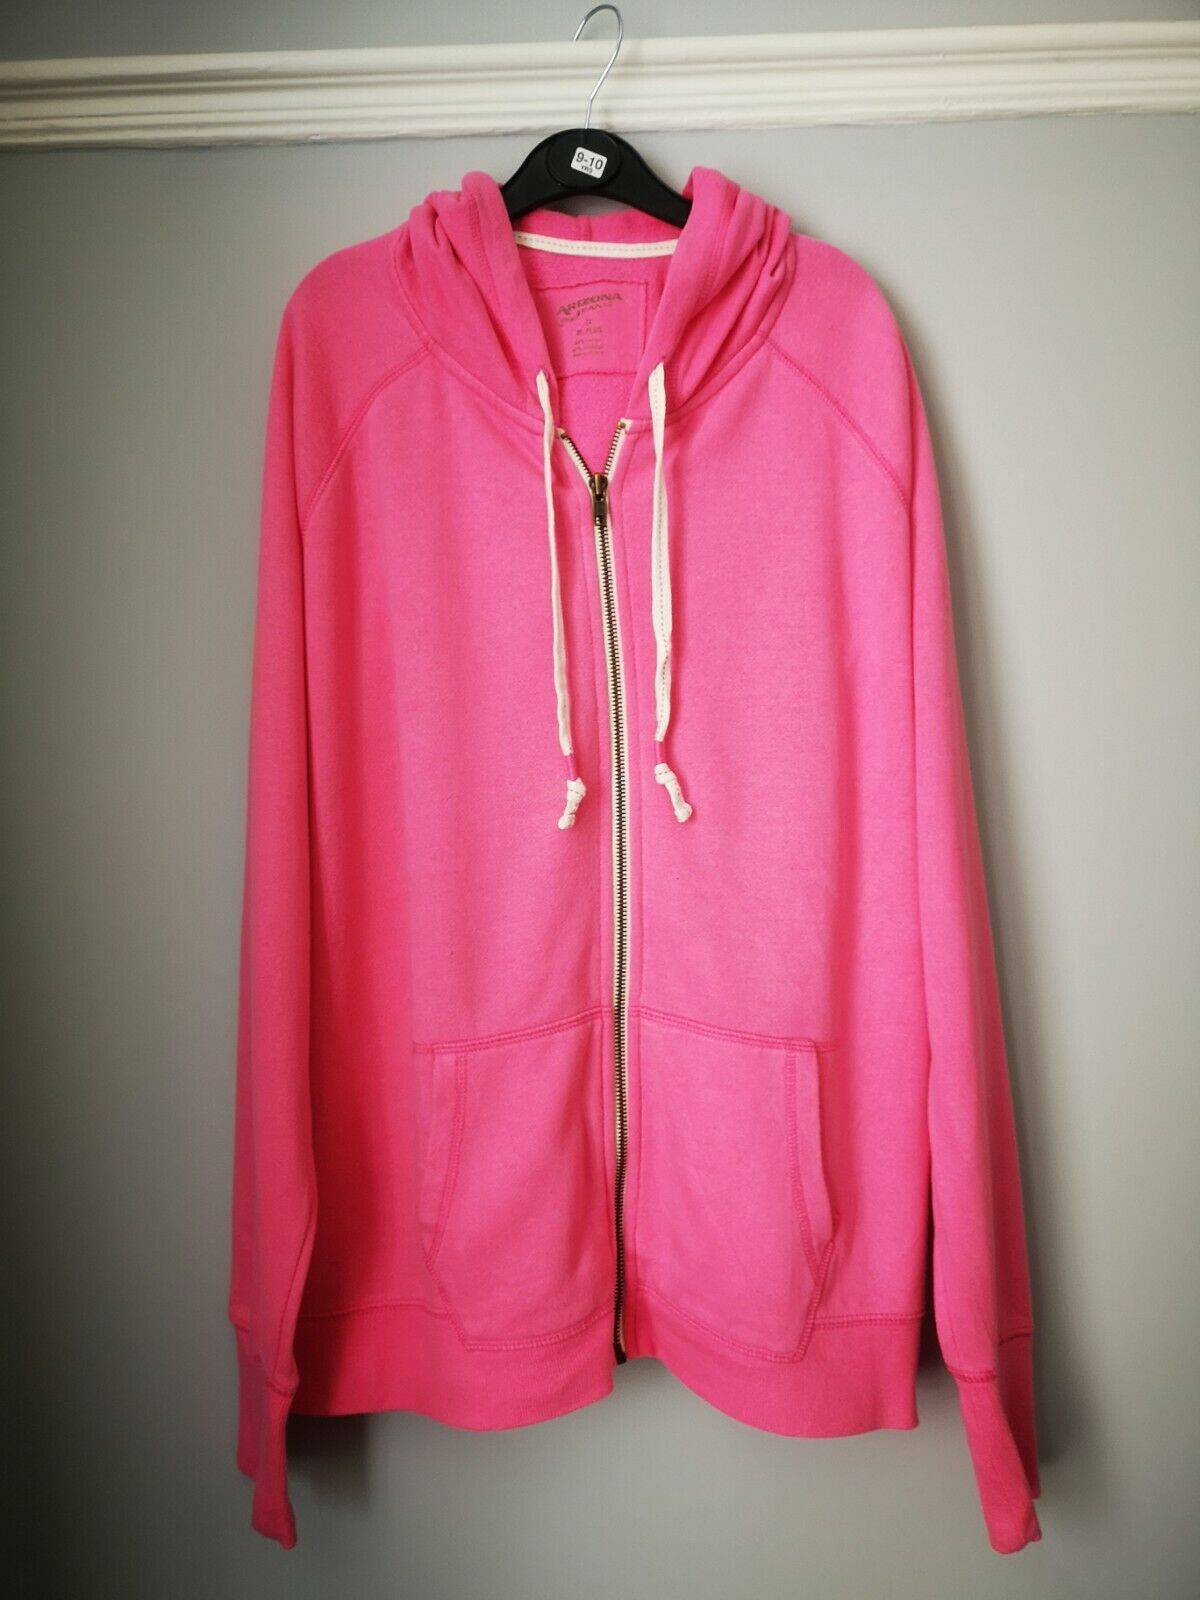 Arizona Jean Co Pink Zip Hoodie With Pockets UK M a good Condition